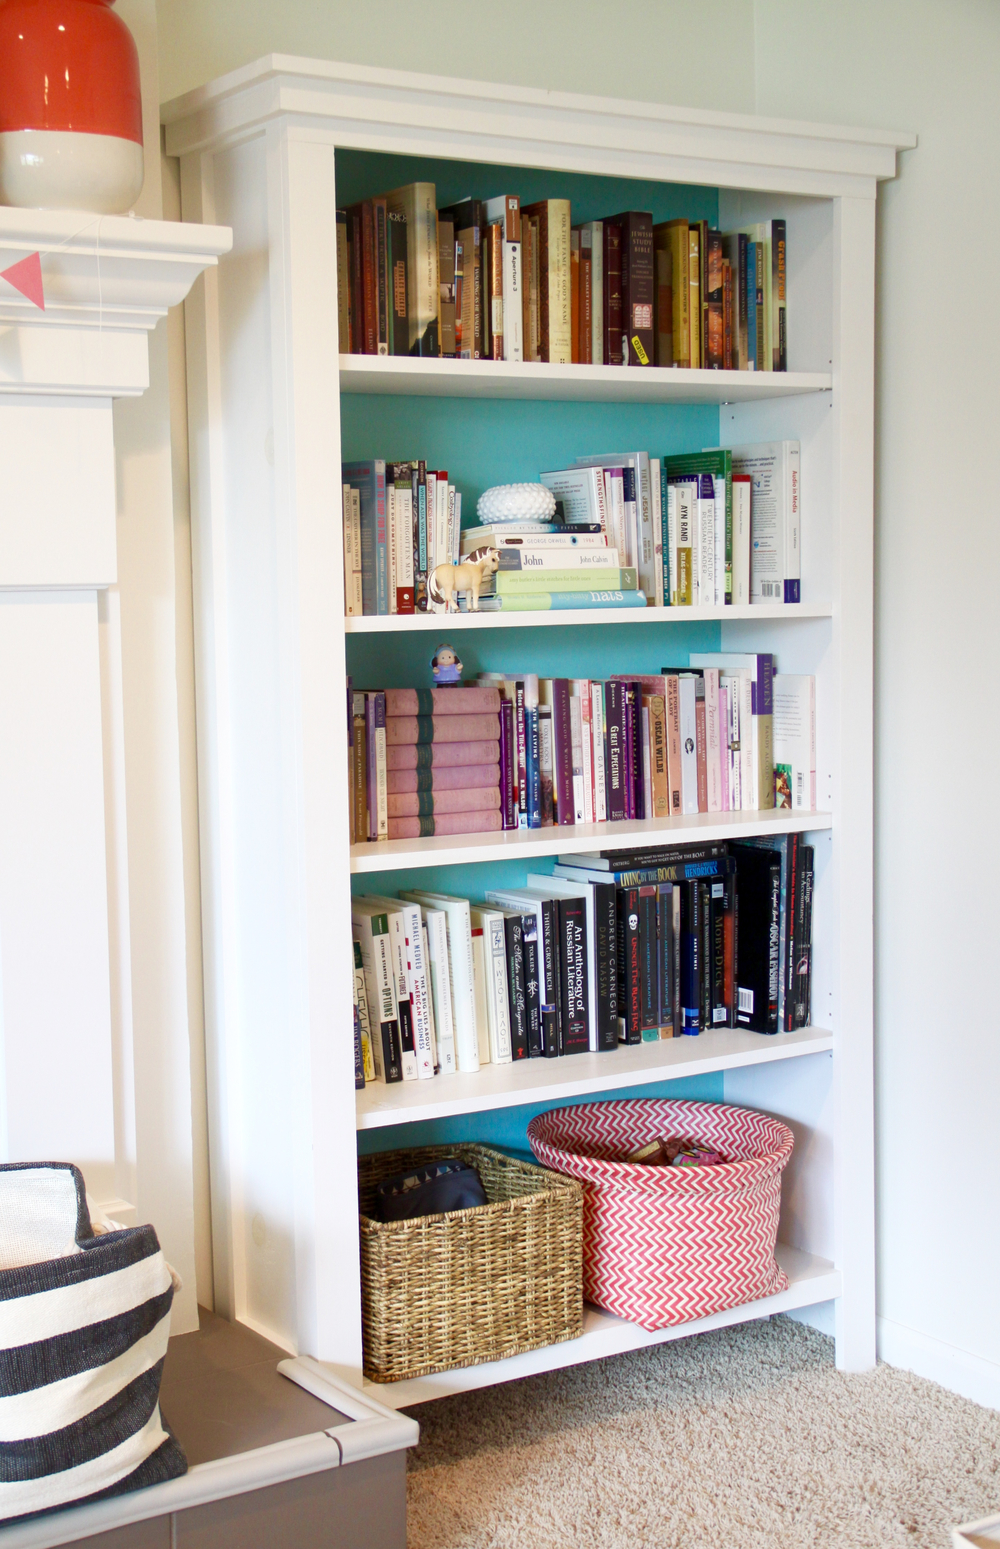 Bookshelves Arranged by Color with Storage Baskets